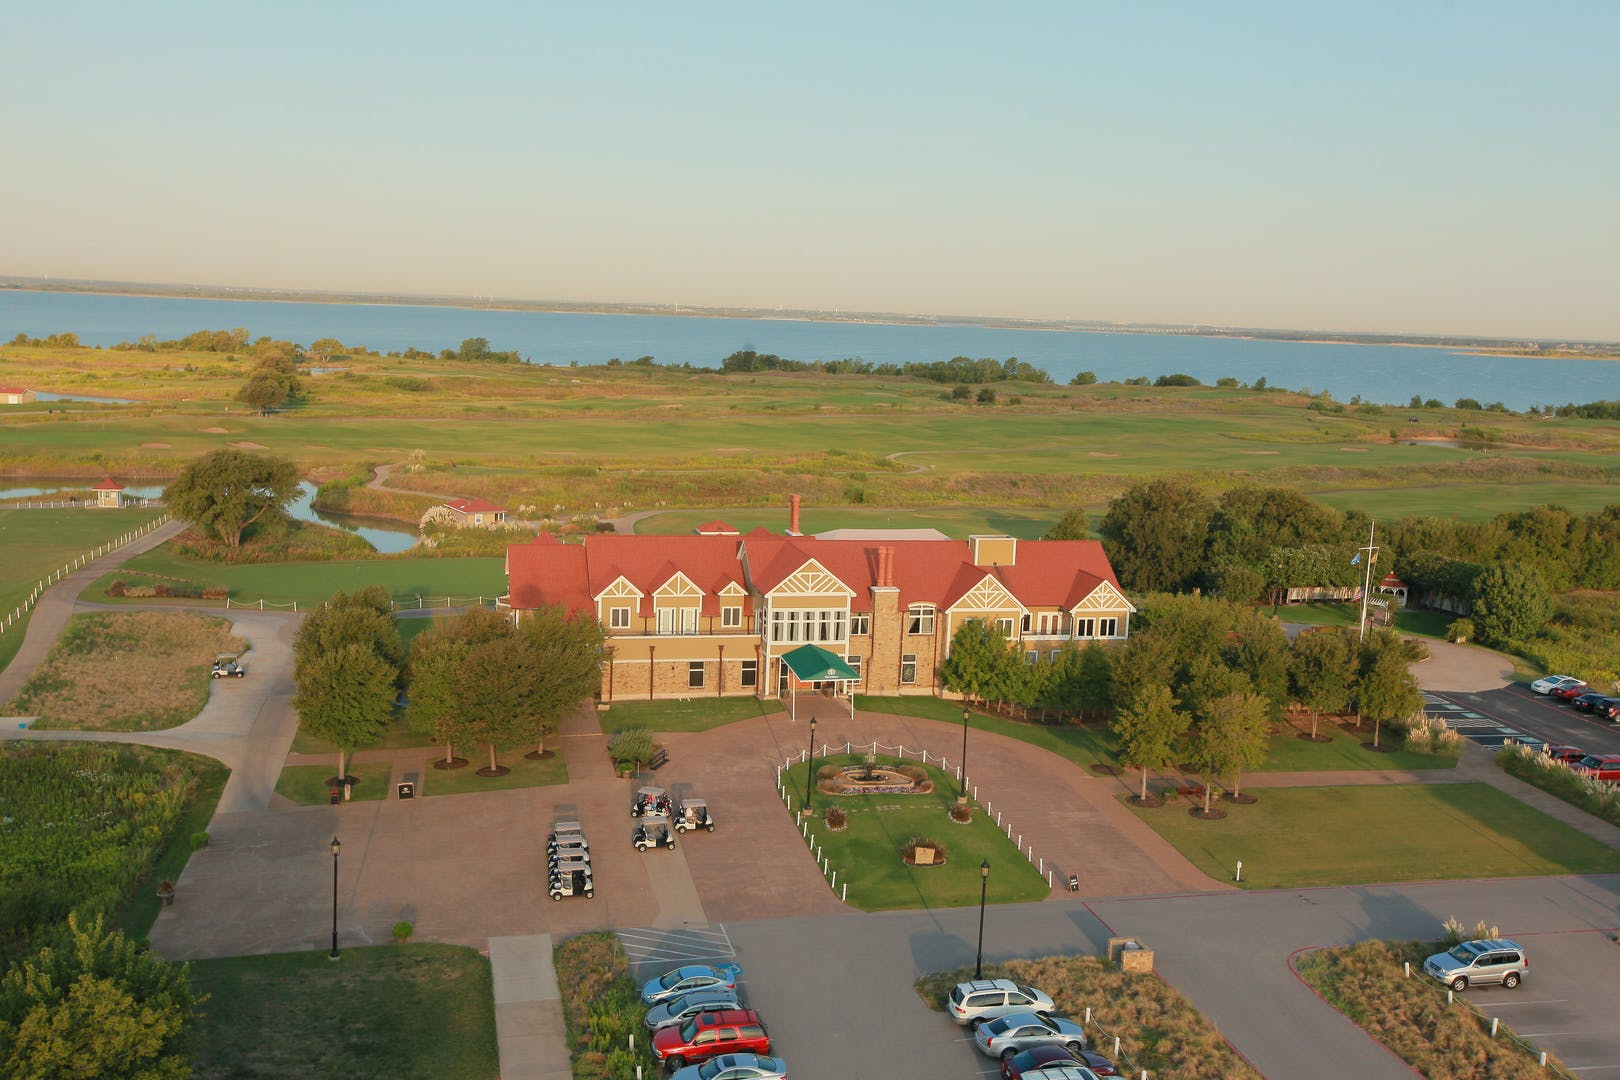 Aerial photo of the clubhouse with Lake Lewisville visible in the distance.